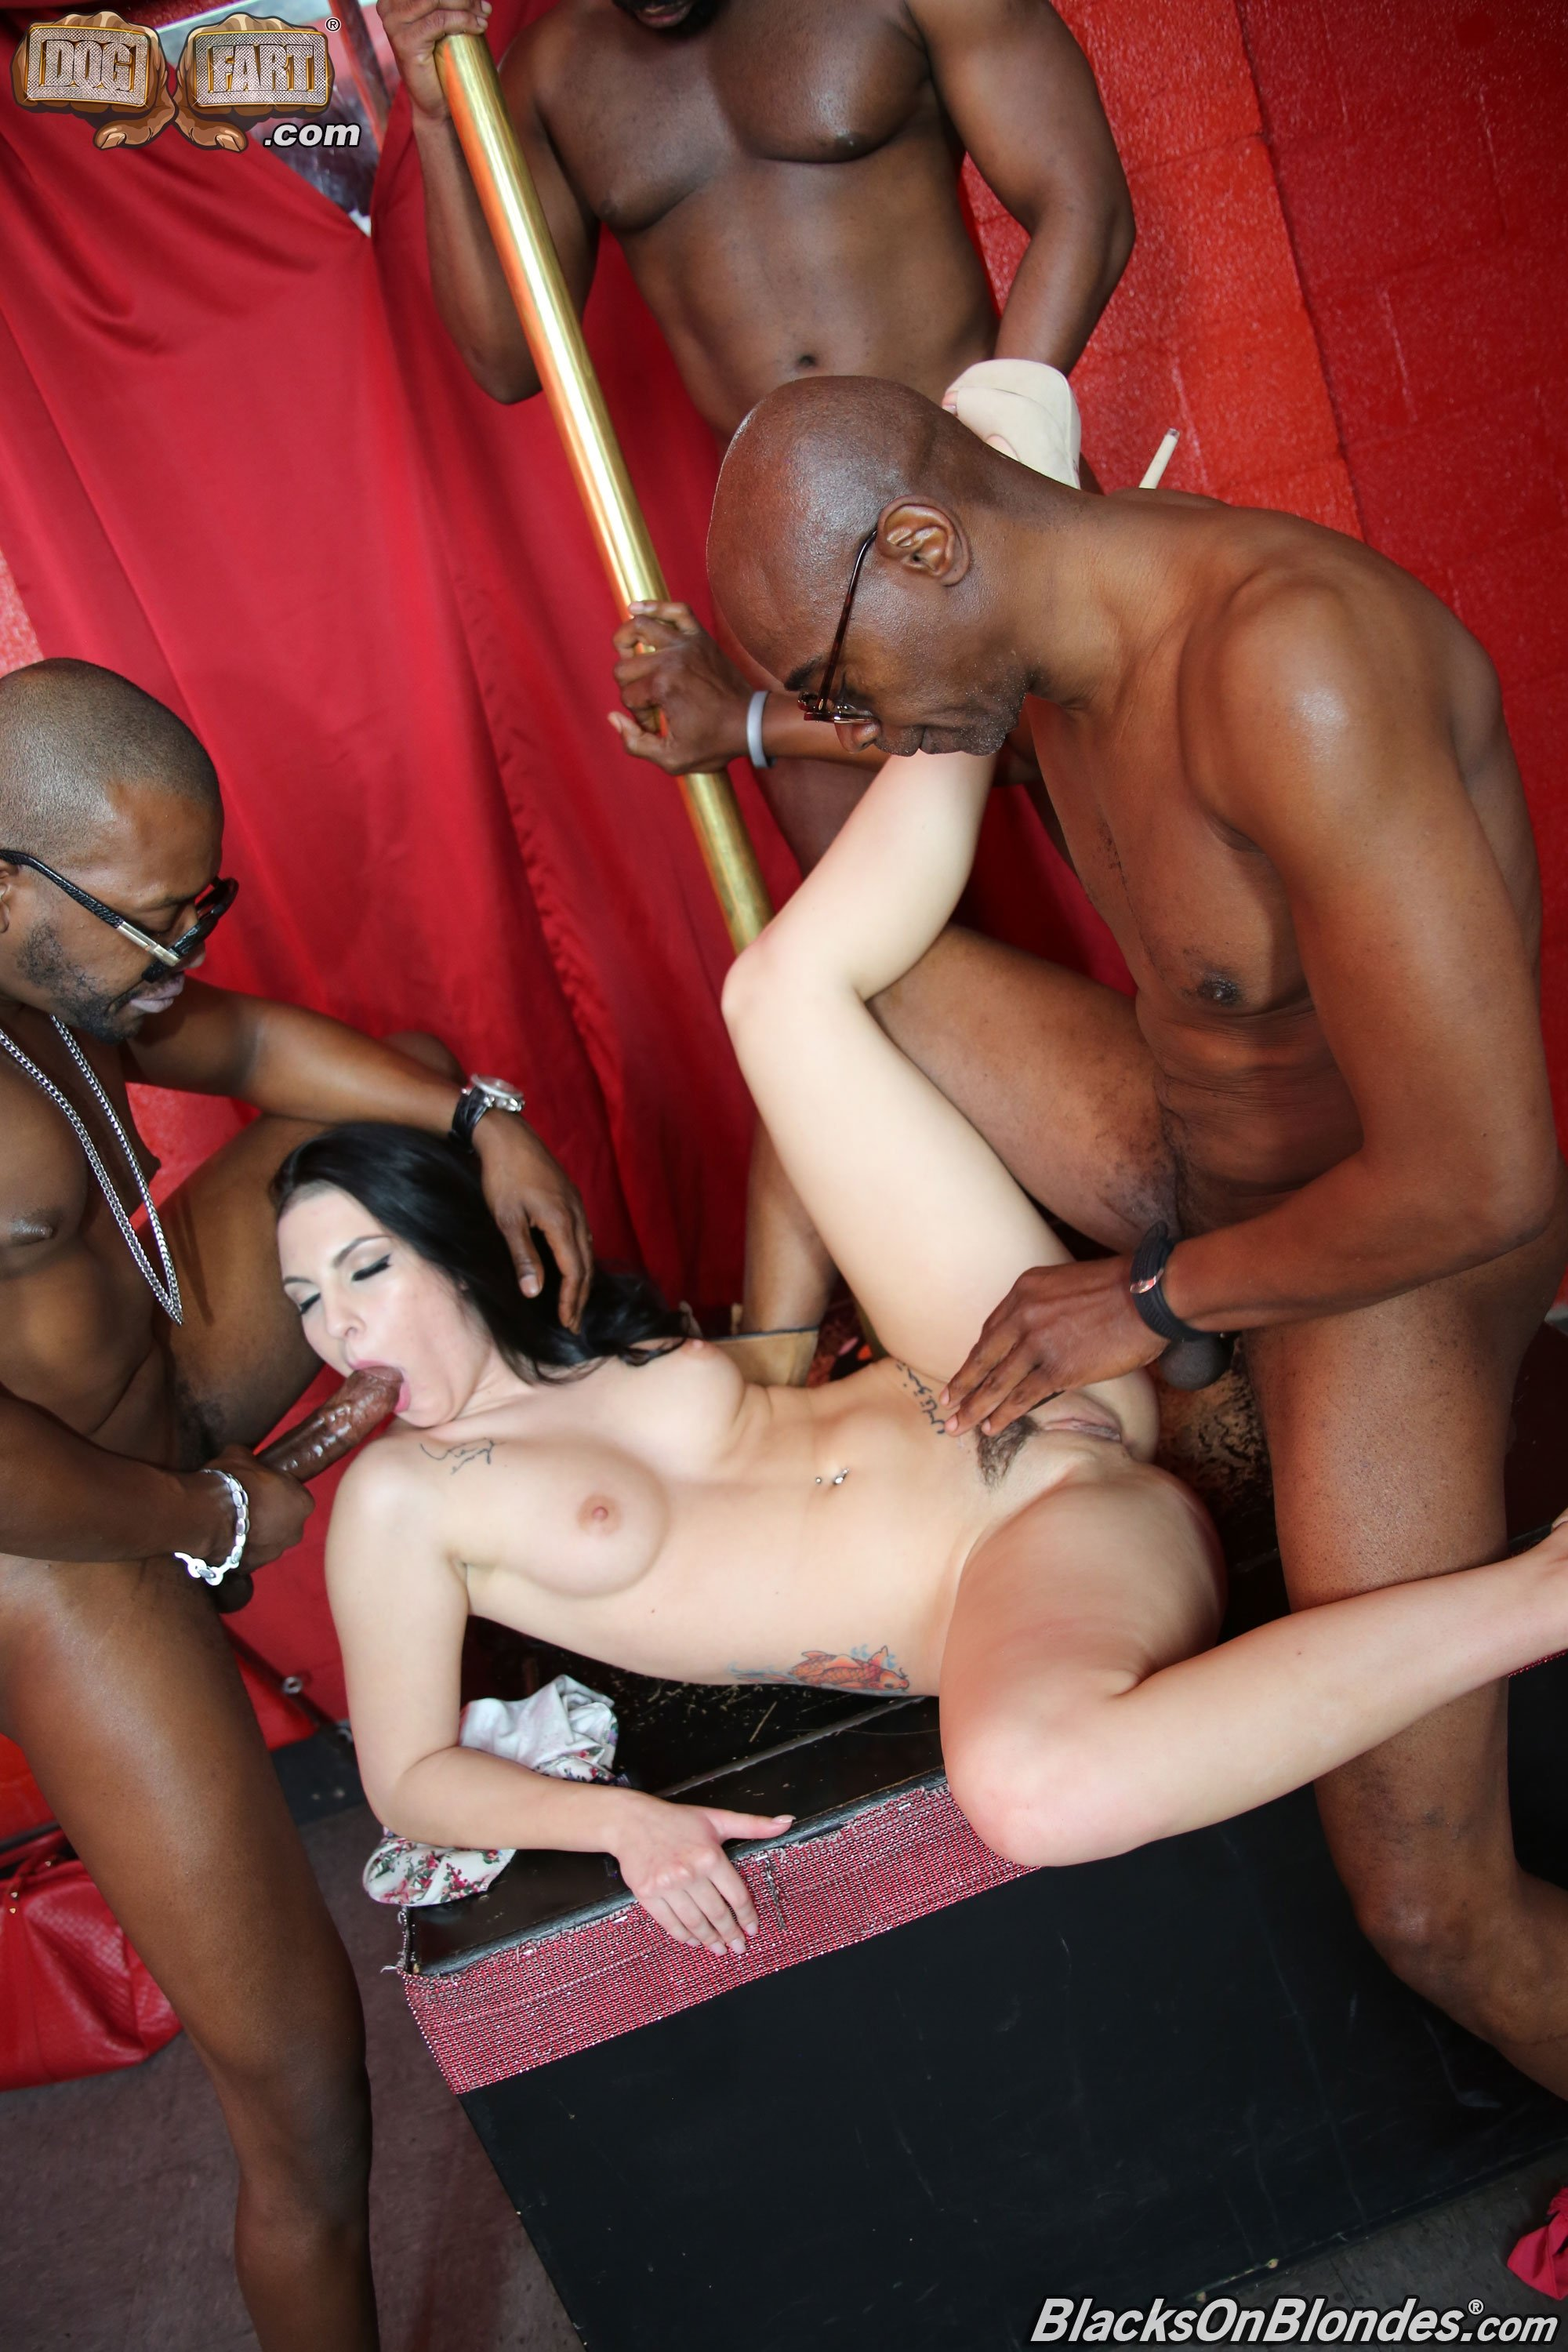 Interracial stocking sex Boost seek family and friends